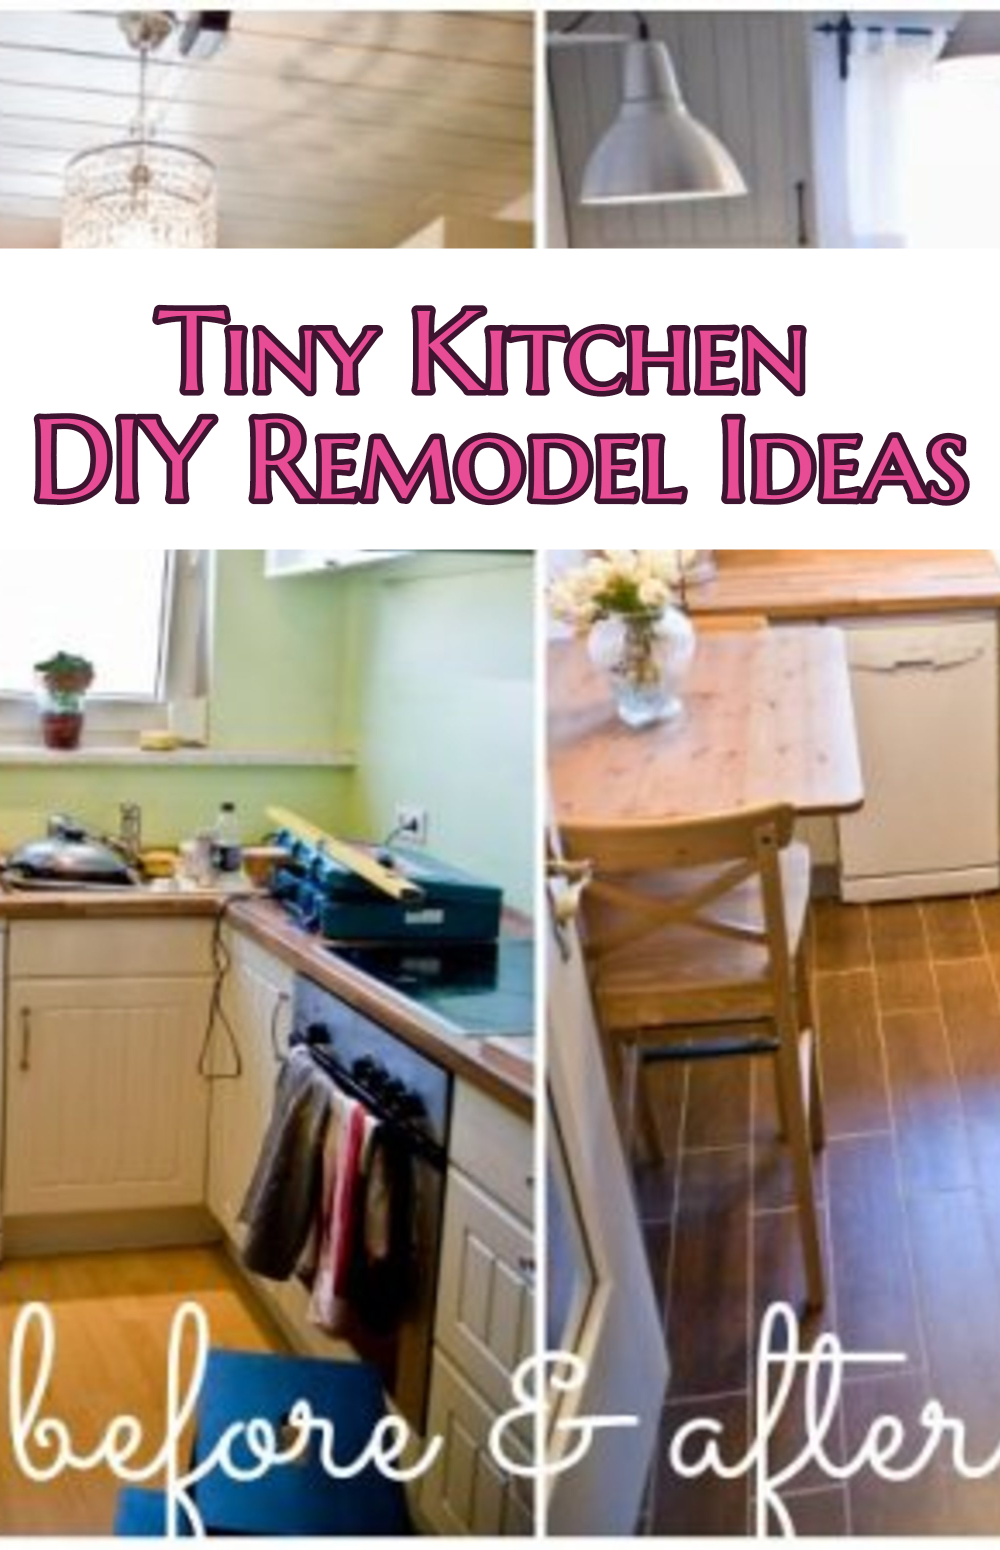 Small Kitchen Ideas On A Budget Before After Remodel Pictures Of Tiny Kitchens Clever Diy Plans